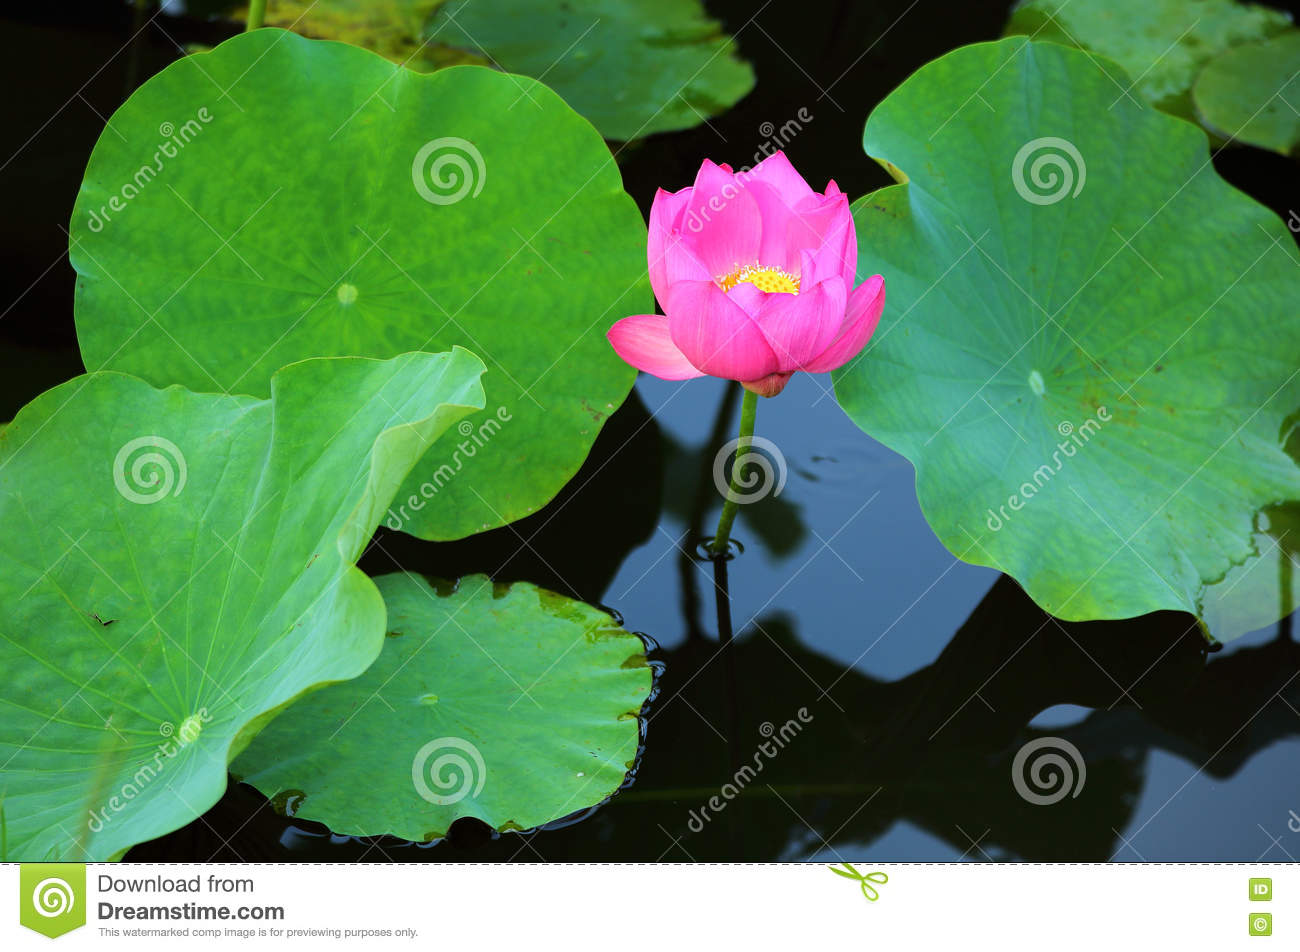 A pink lotus flower blooming among lush leaves in a pond with a pink lotus flower blooming among lush leaves in a pond with reflections on the smooth izmirmasajfo